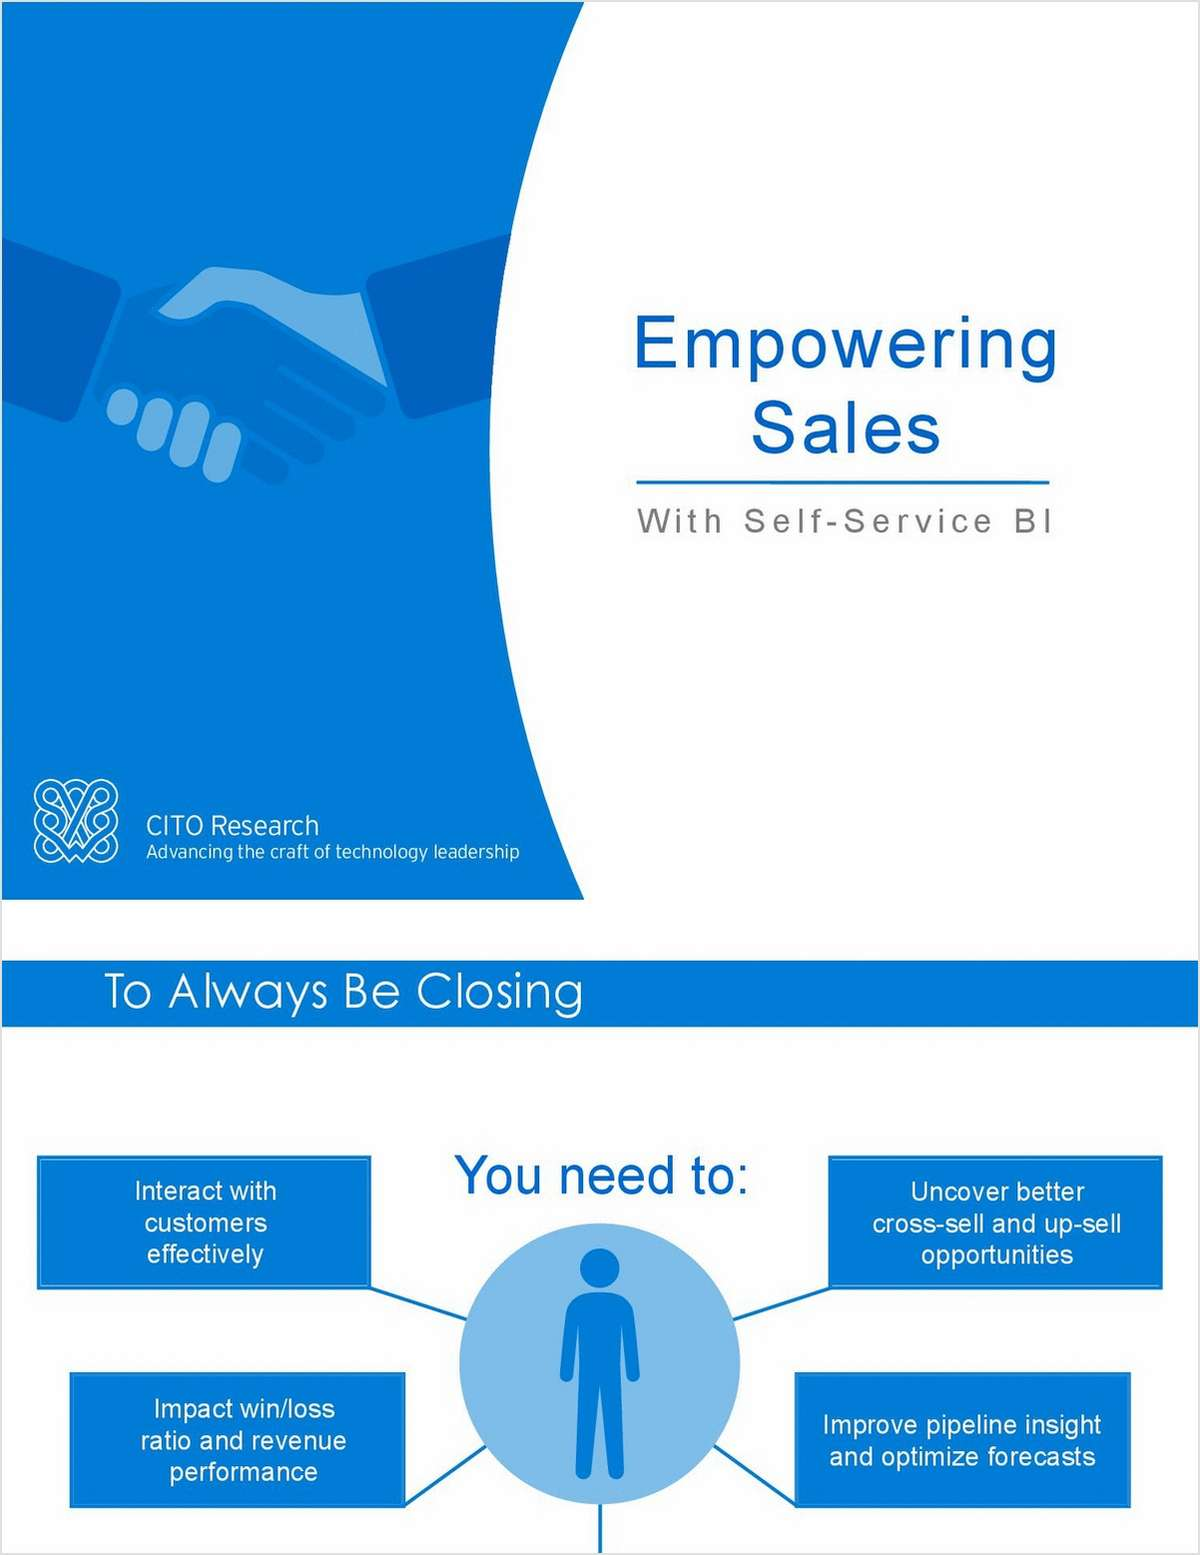 CITO eBook: Empowering Sales with Self Service BI